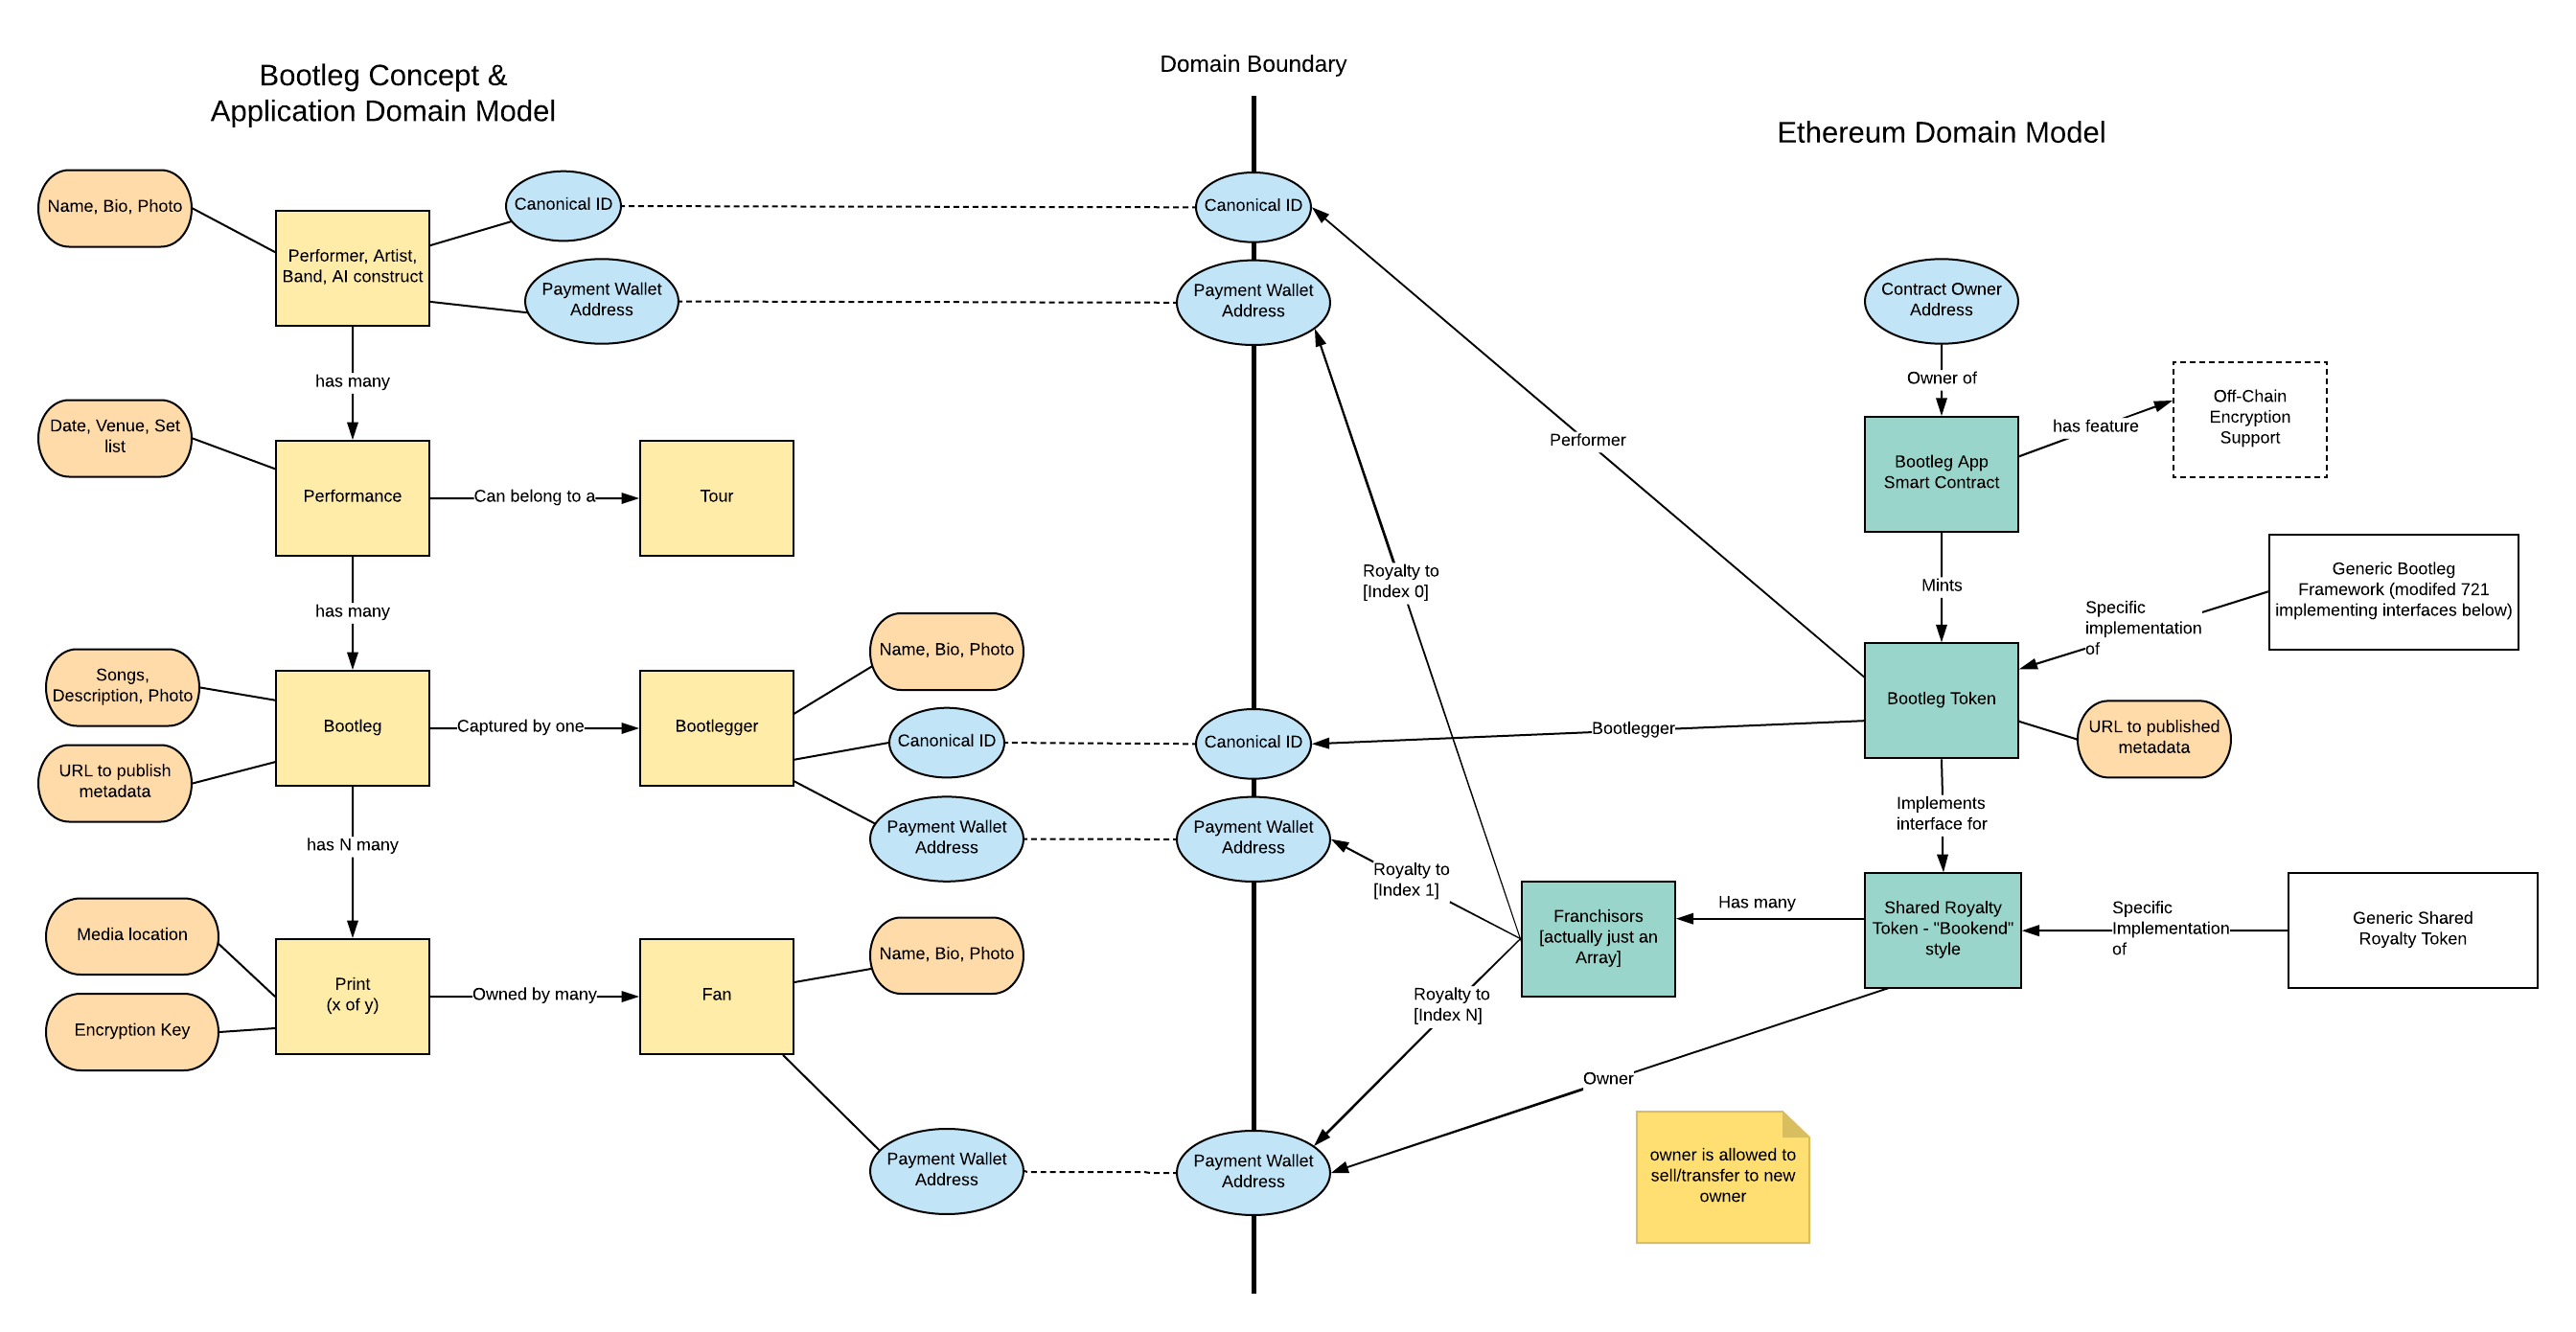 App and Smart Contract Models